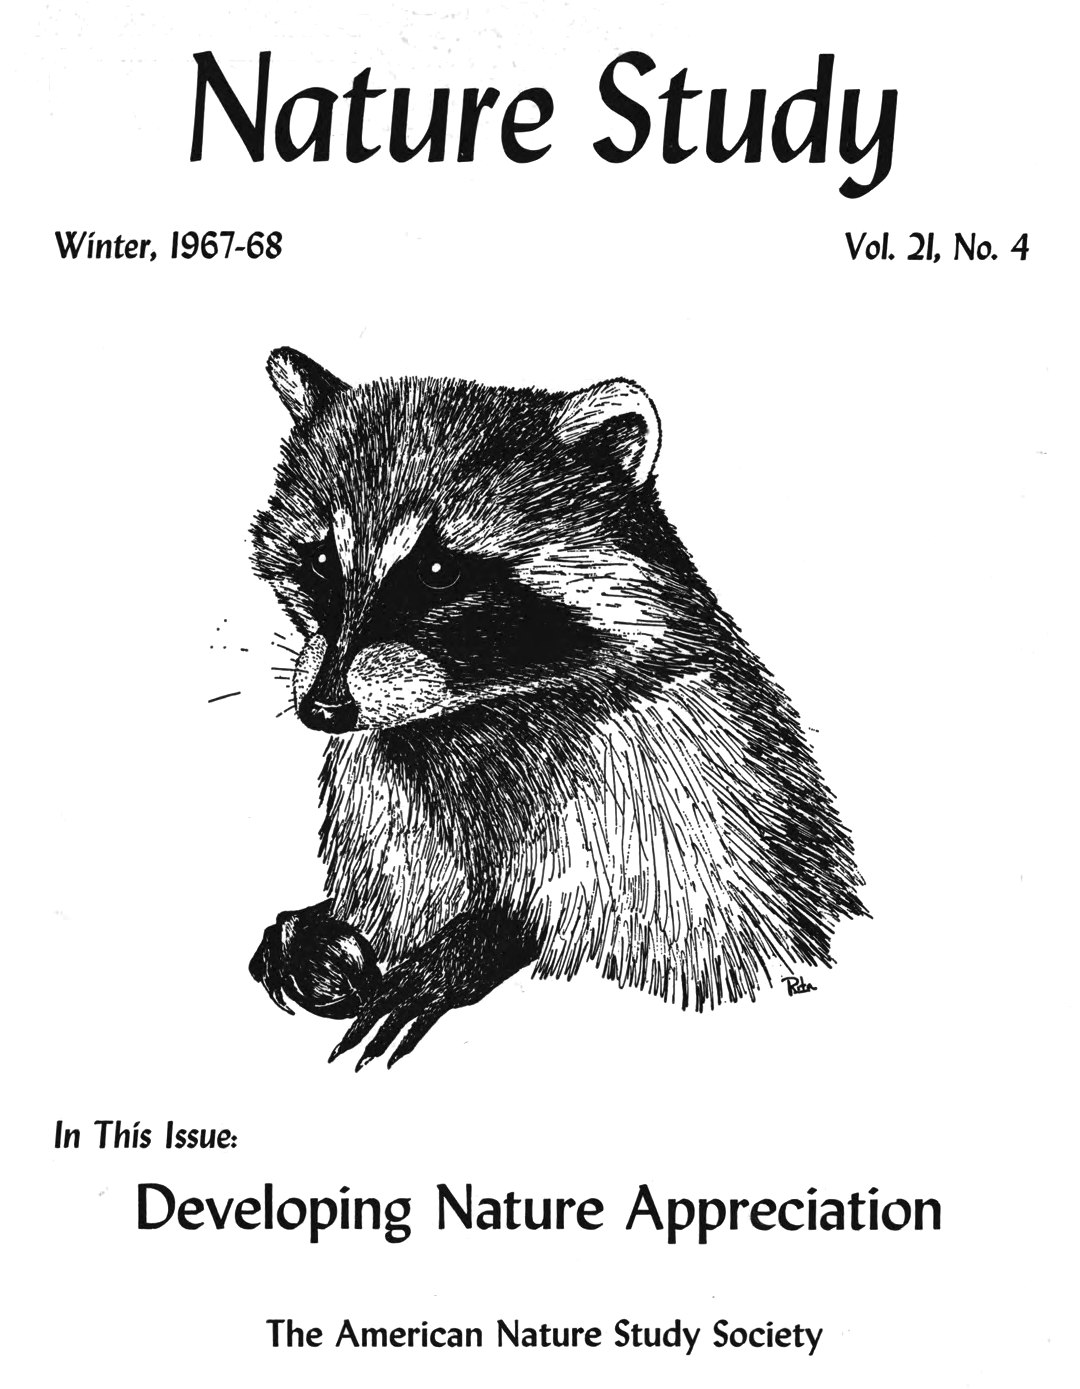 Nature Study Journal Winter 1967-68